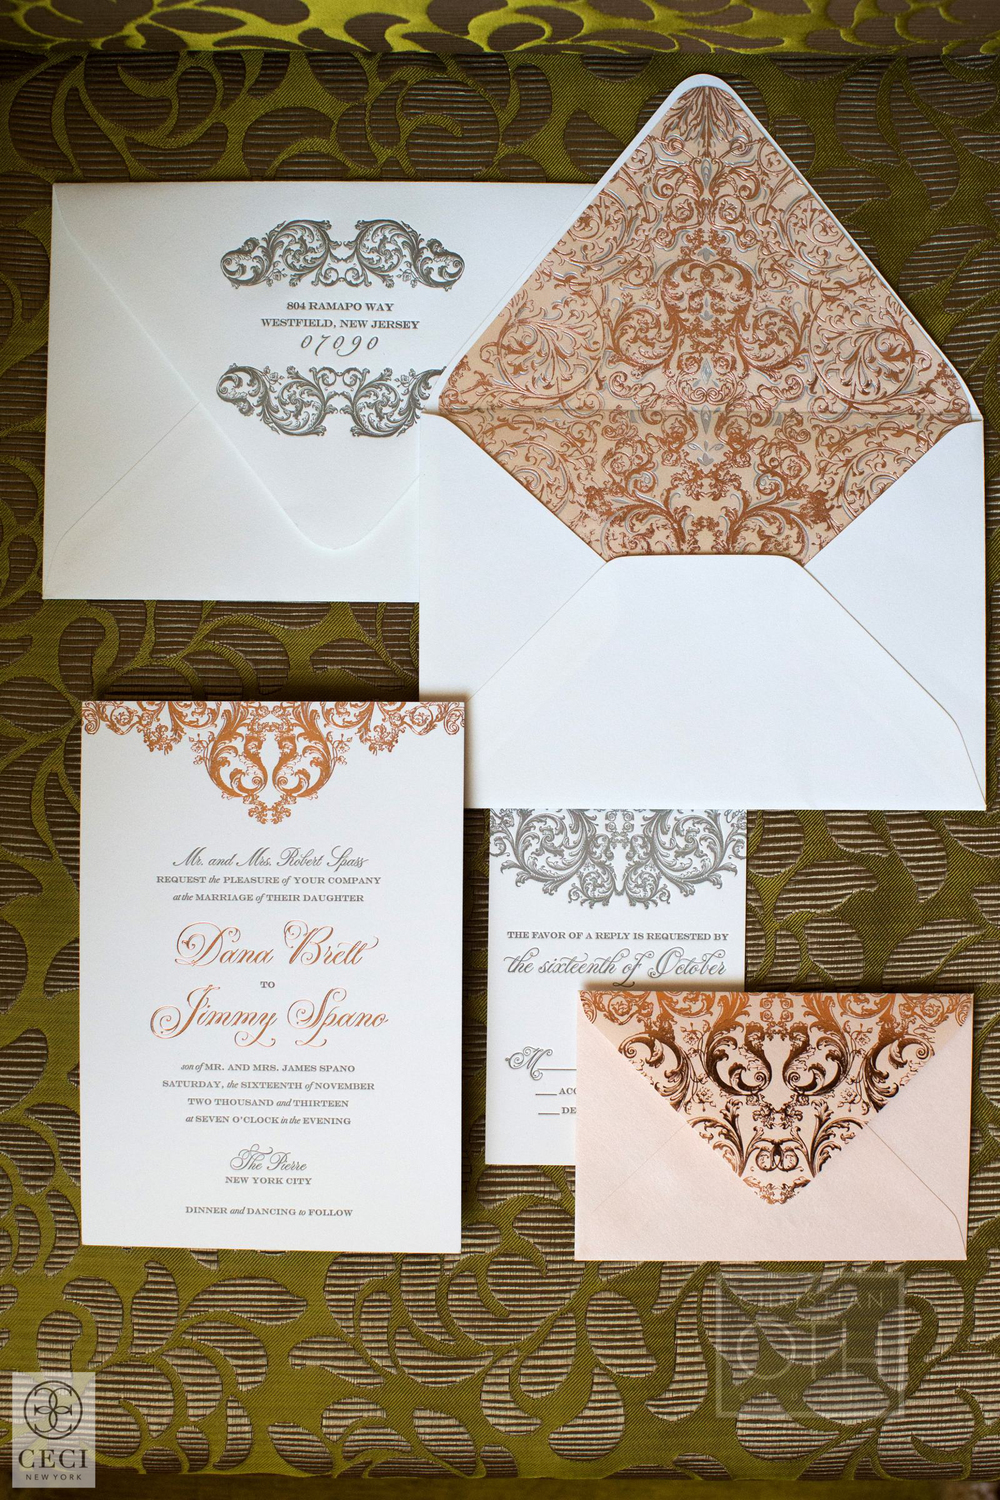 Ceci_New_York_Christian_Oth_CeciStyle_Pierre_New_York_City_Wedding_Luxury_Custom_Invitations_Personalized_Rose_Gold_Blush_Bride_-2.jpg